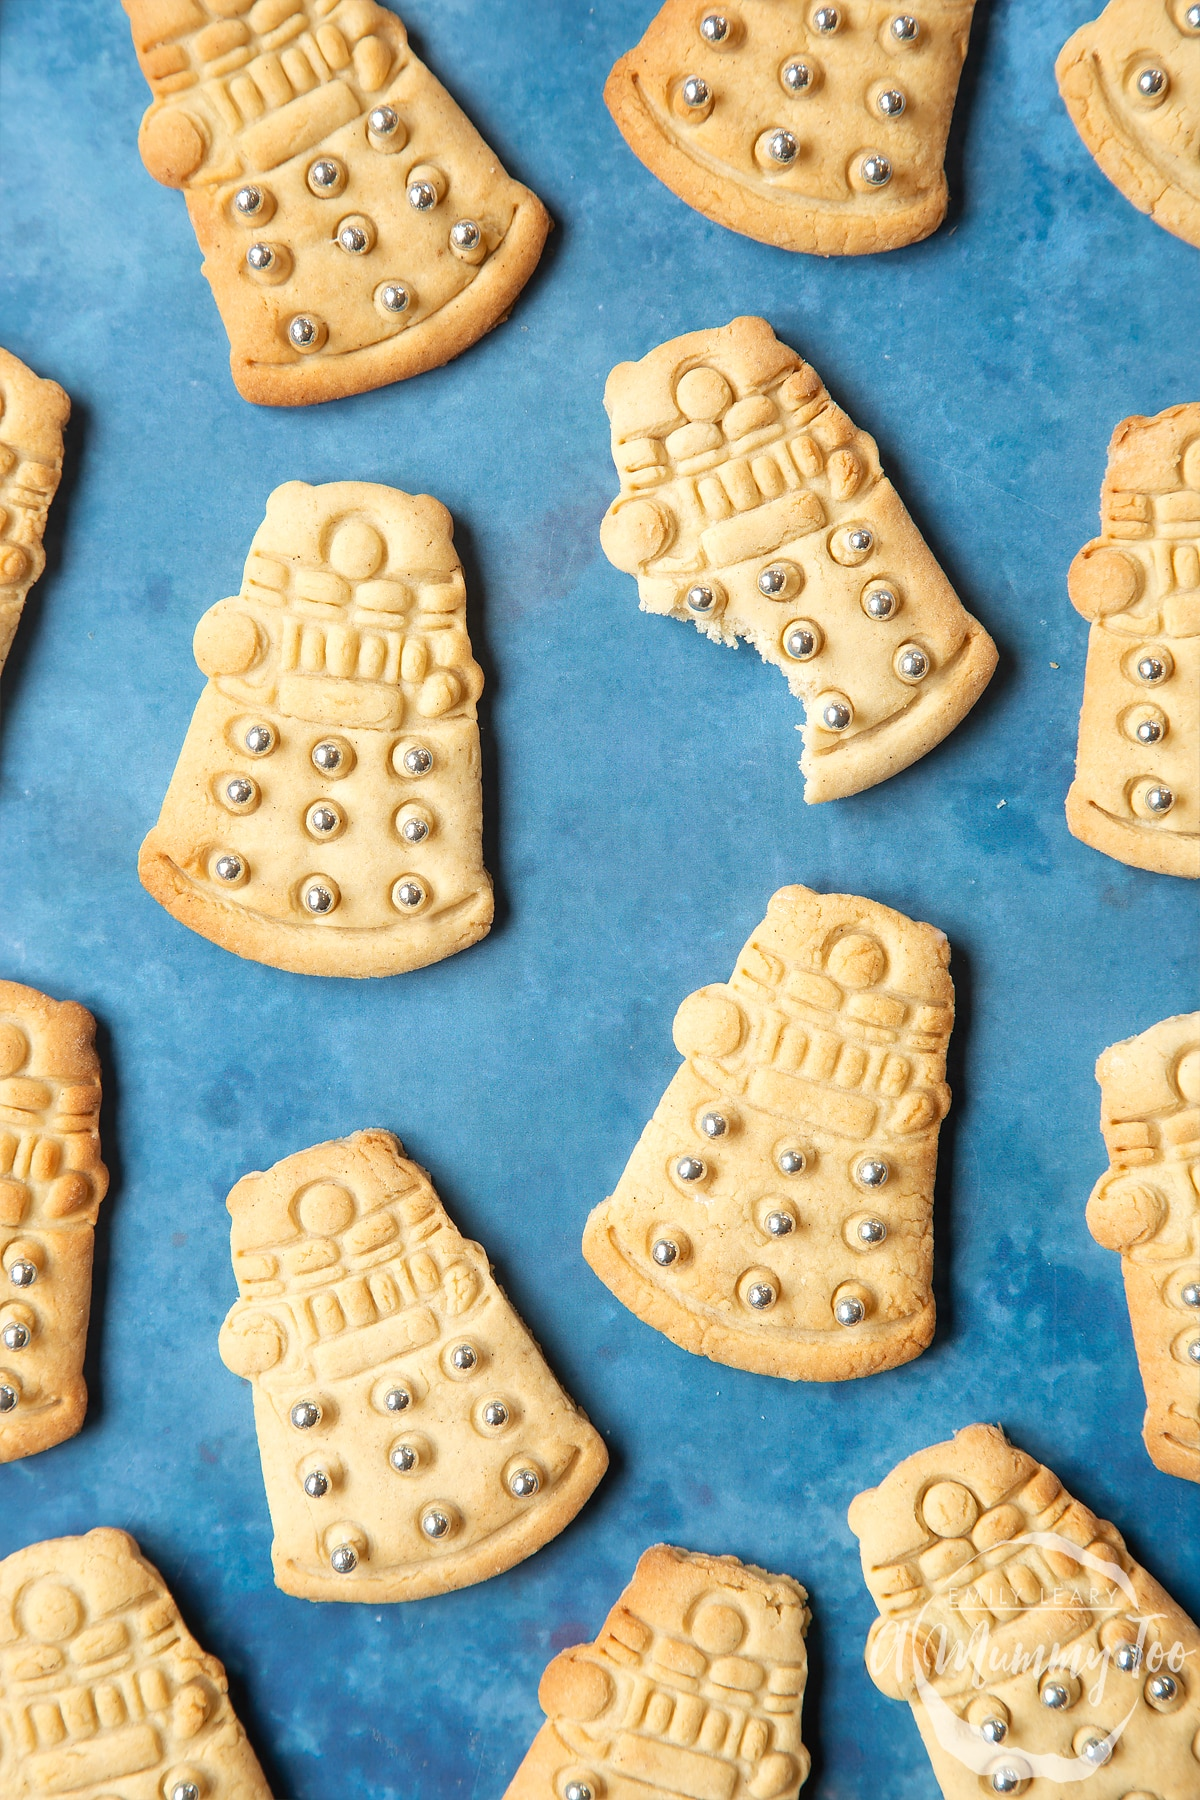 Dalek cookies on a blue background. The cookies are decorated with edible silver candy balls. One of the cookies has a bite out of it.